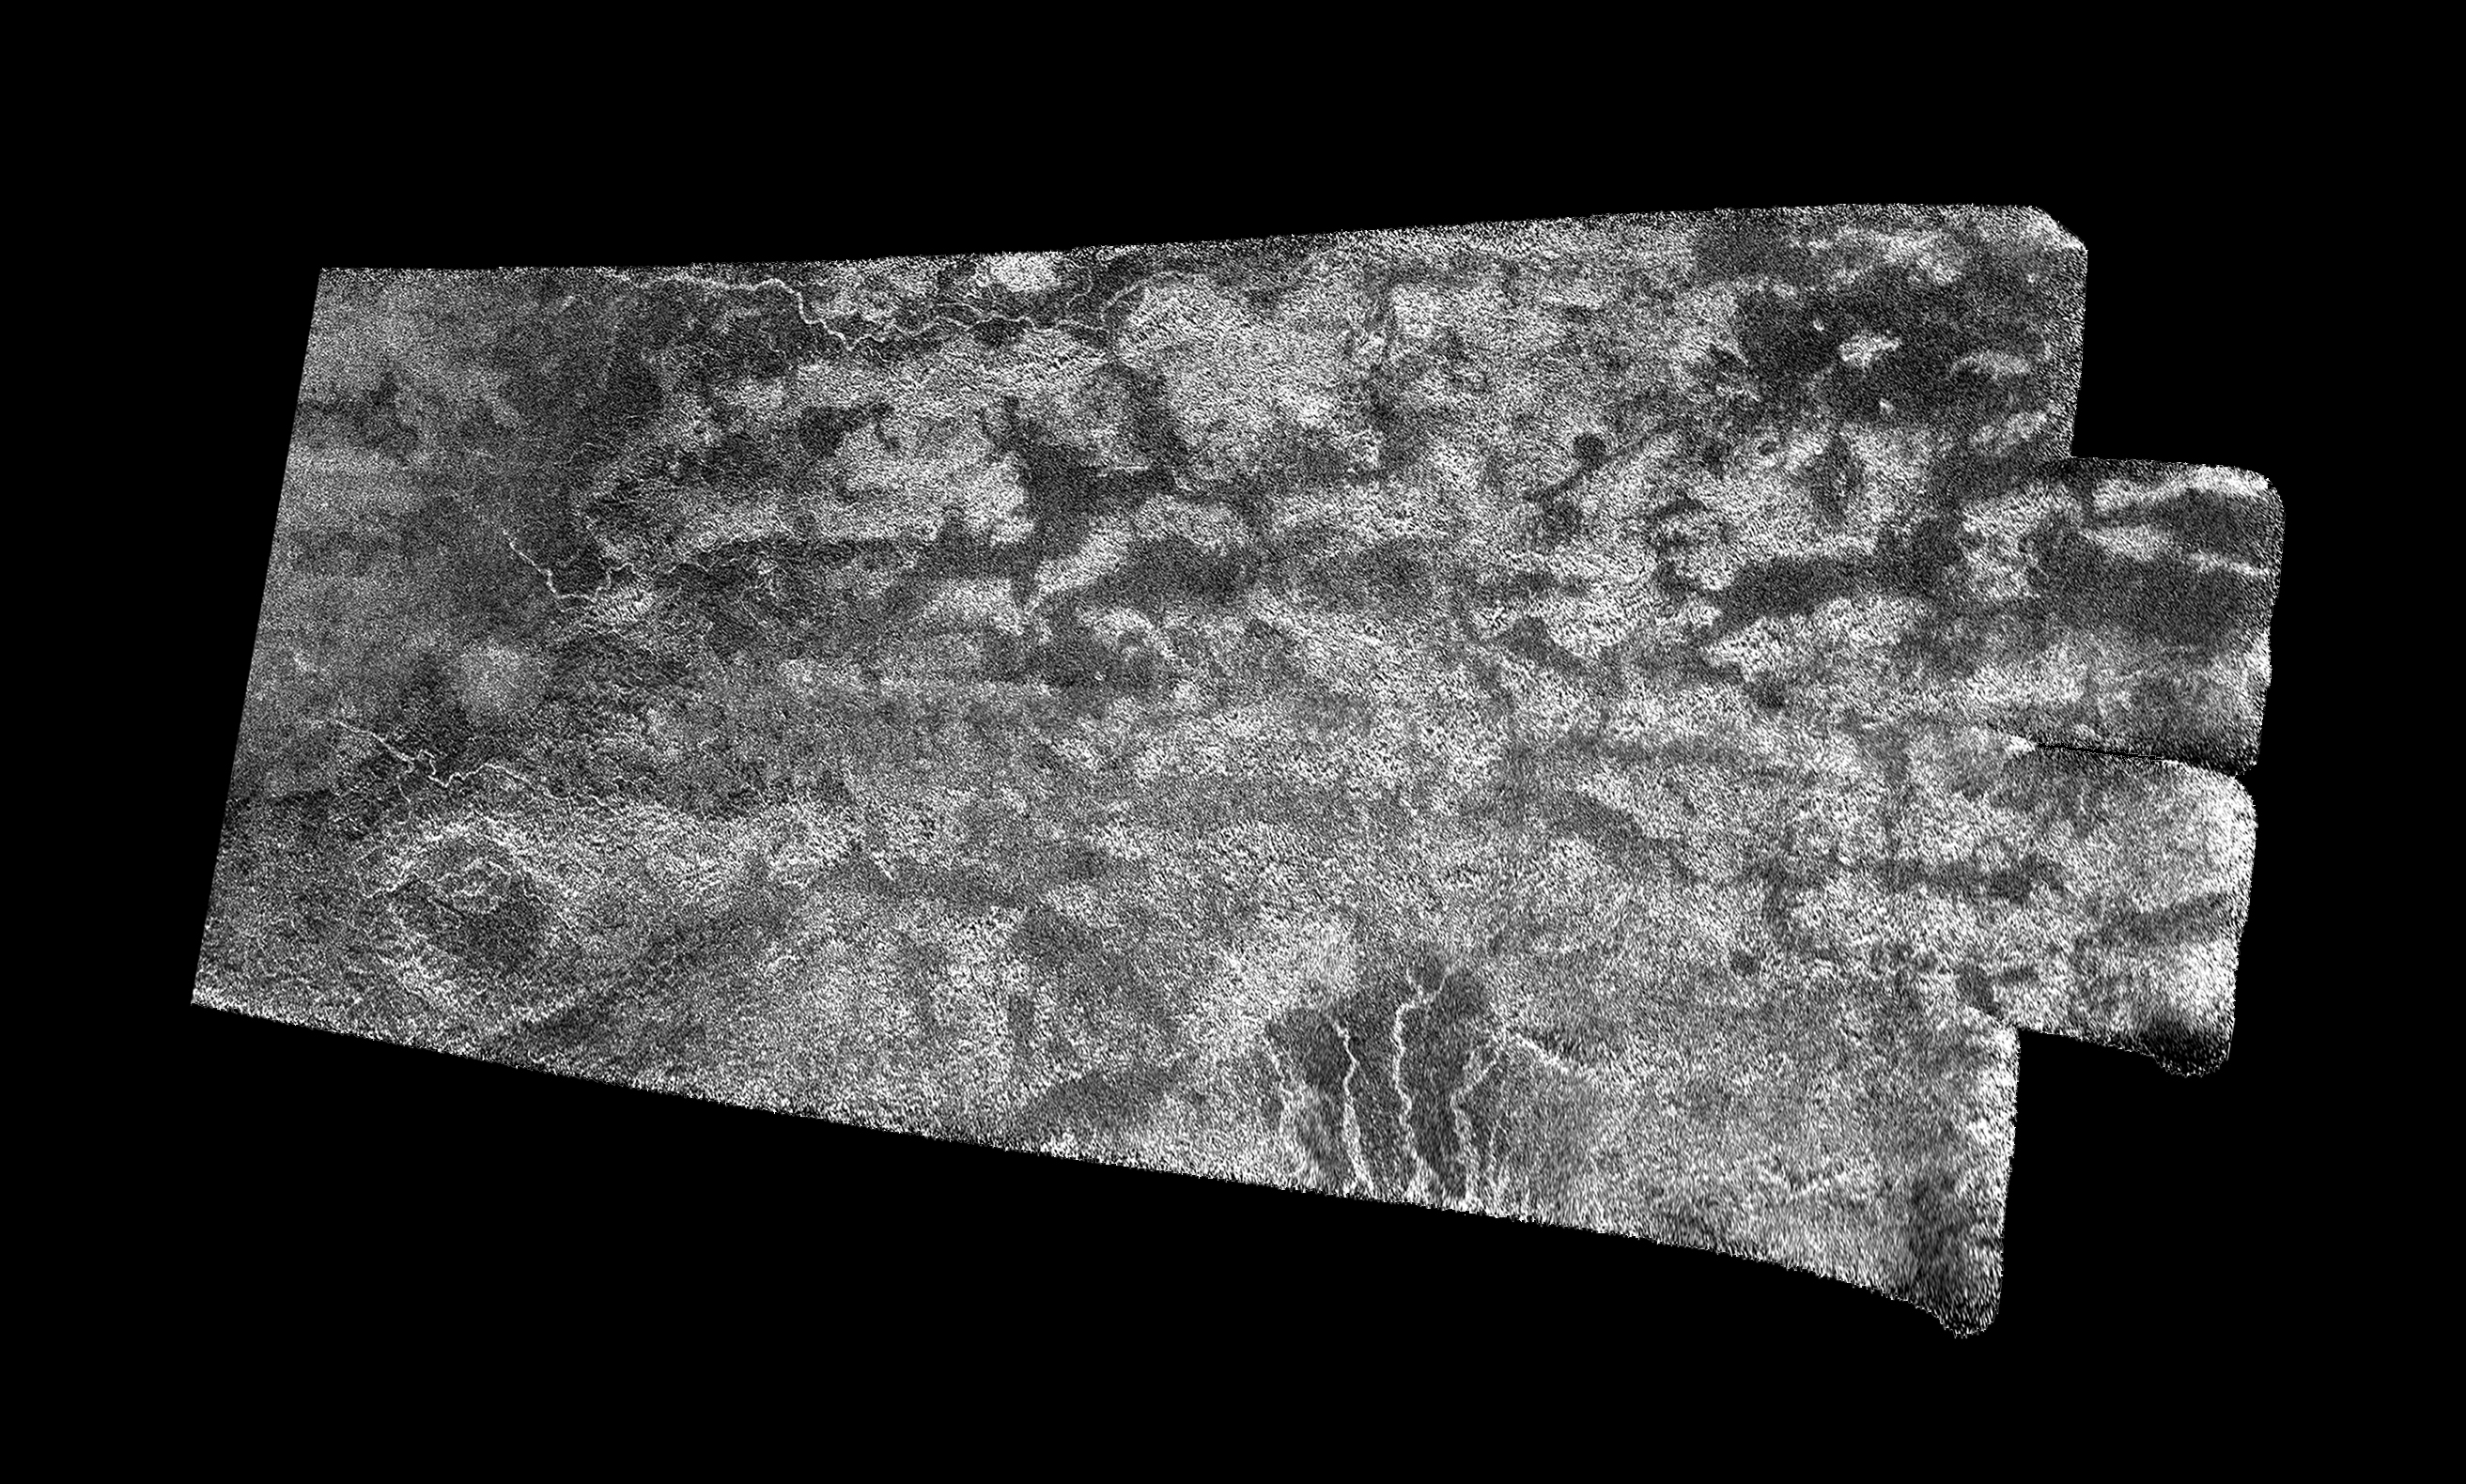 Black and white aerial image of Titan.